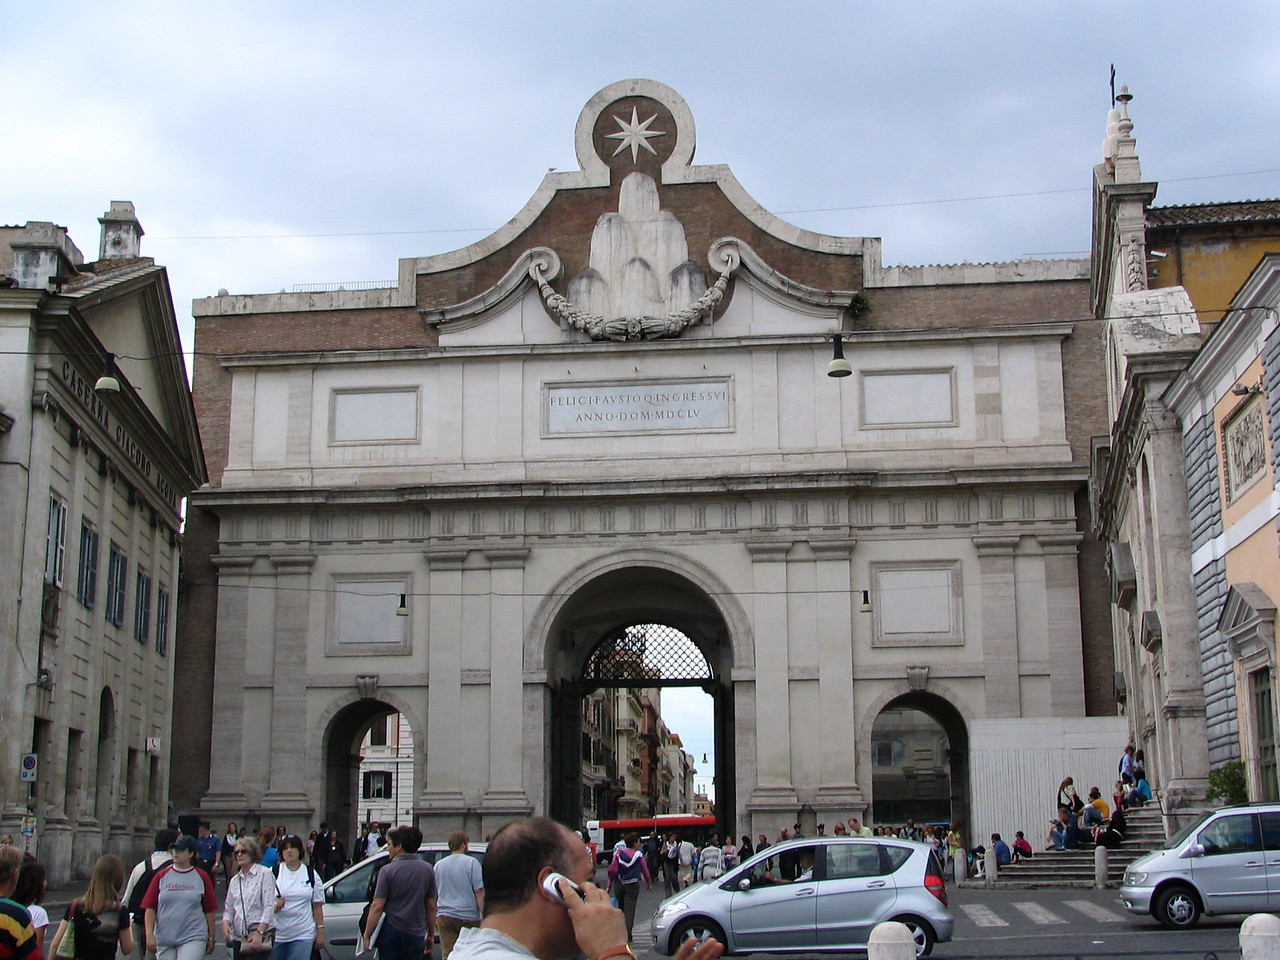 Piazza del Popolo. This is the Porta del Popolo where many immigrants entered the city of Rome since the year 1655. It was built to impress the immigrants on Roman architecture.